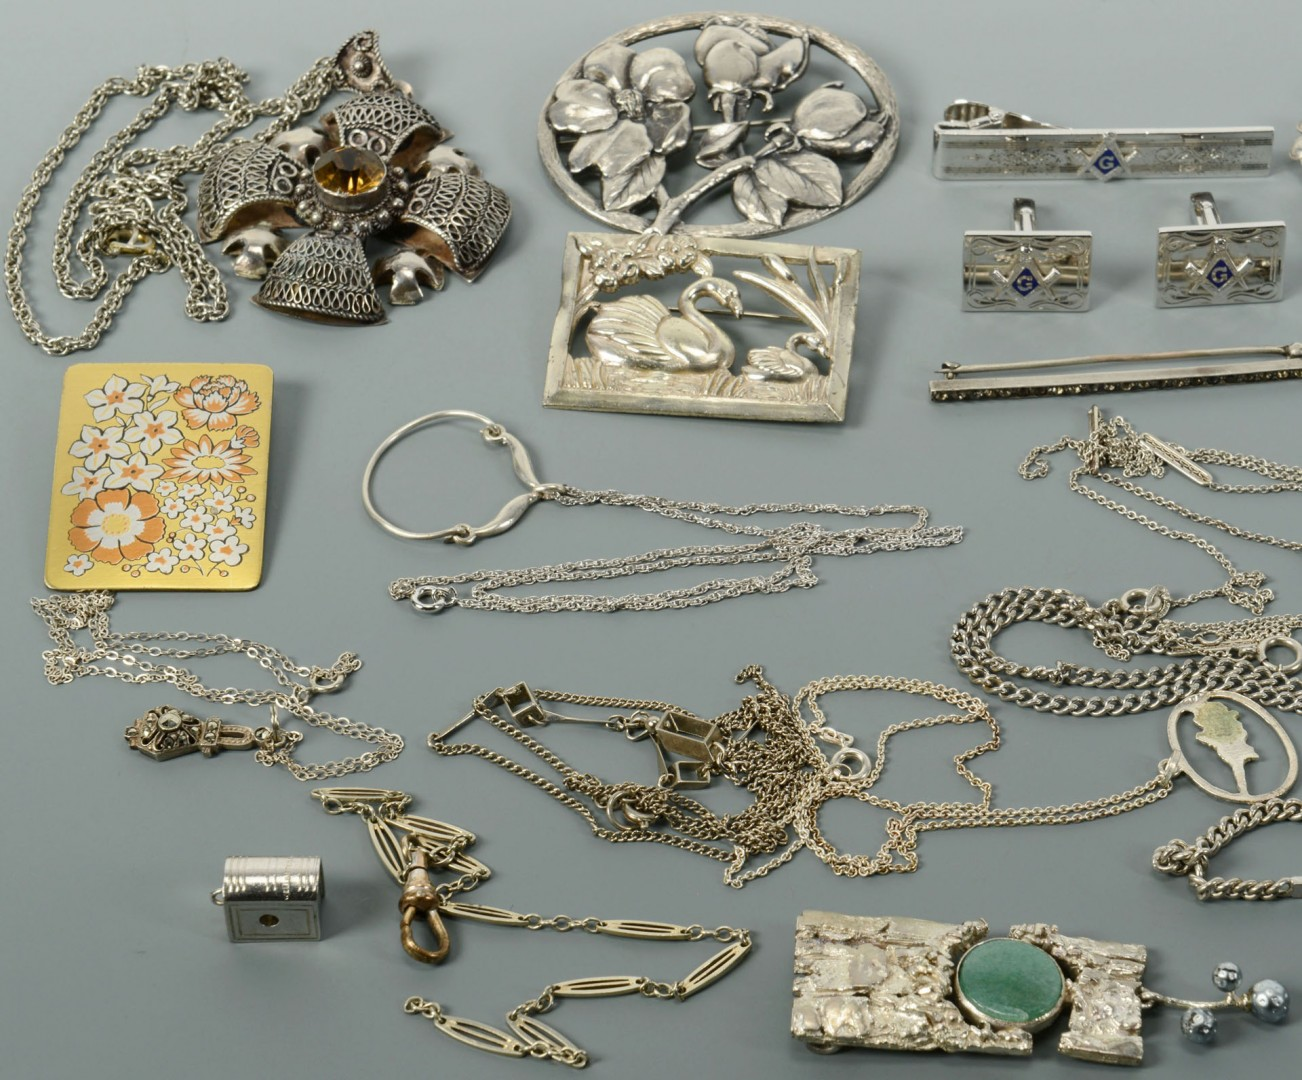 Lot of Silver Jewelry: Floral, Masonic, Religious